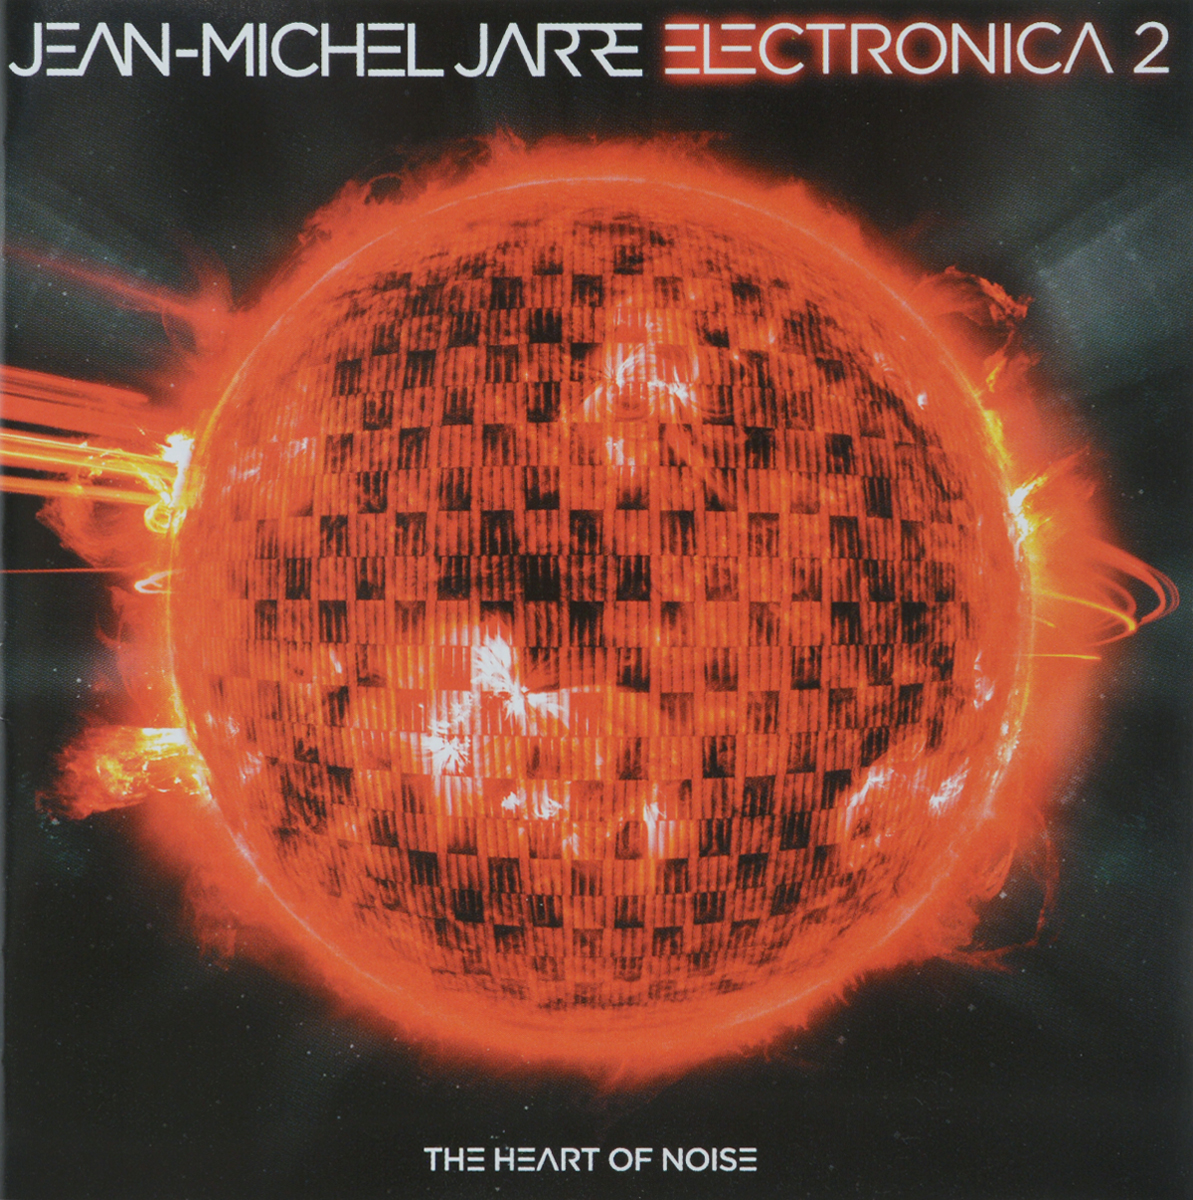 izmeritelplus.ru Jean-Michel Jarre. Electronica 2. The Heart Of Noise